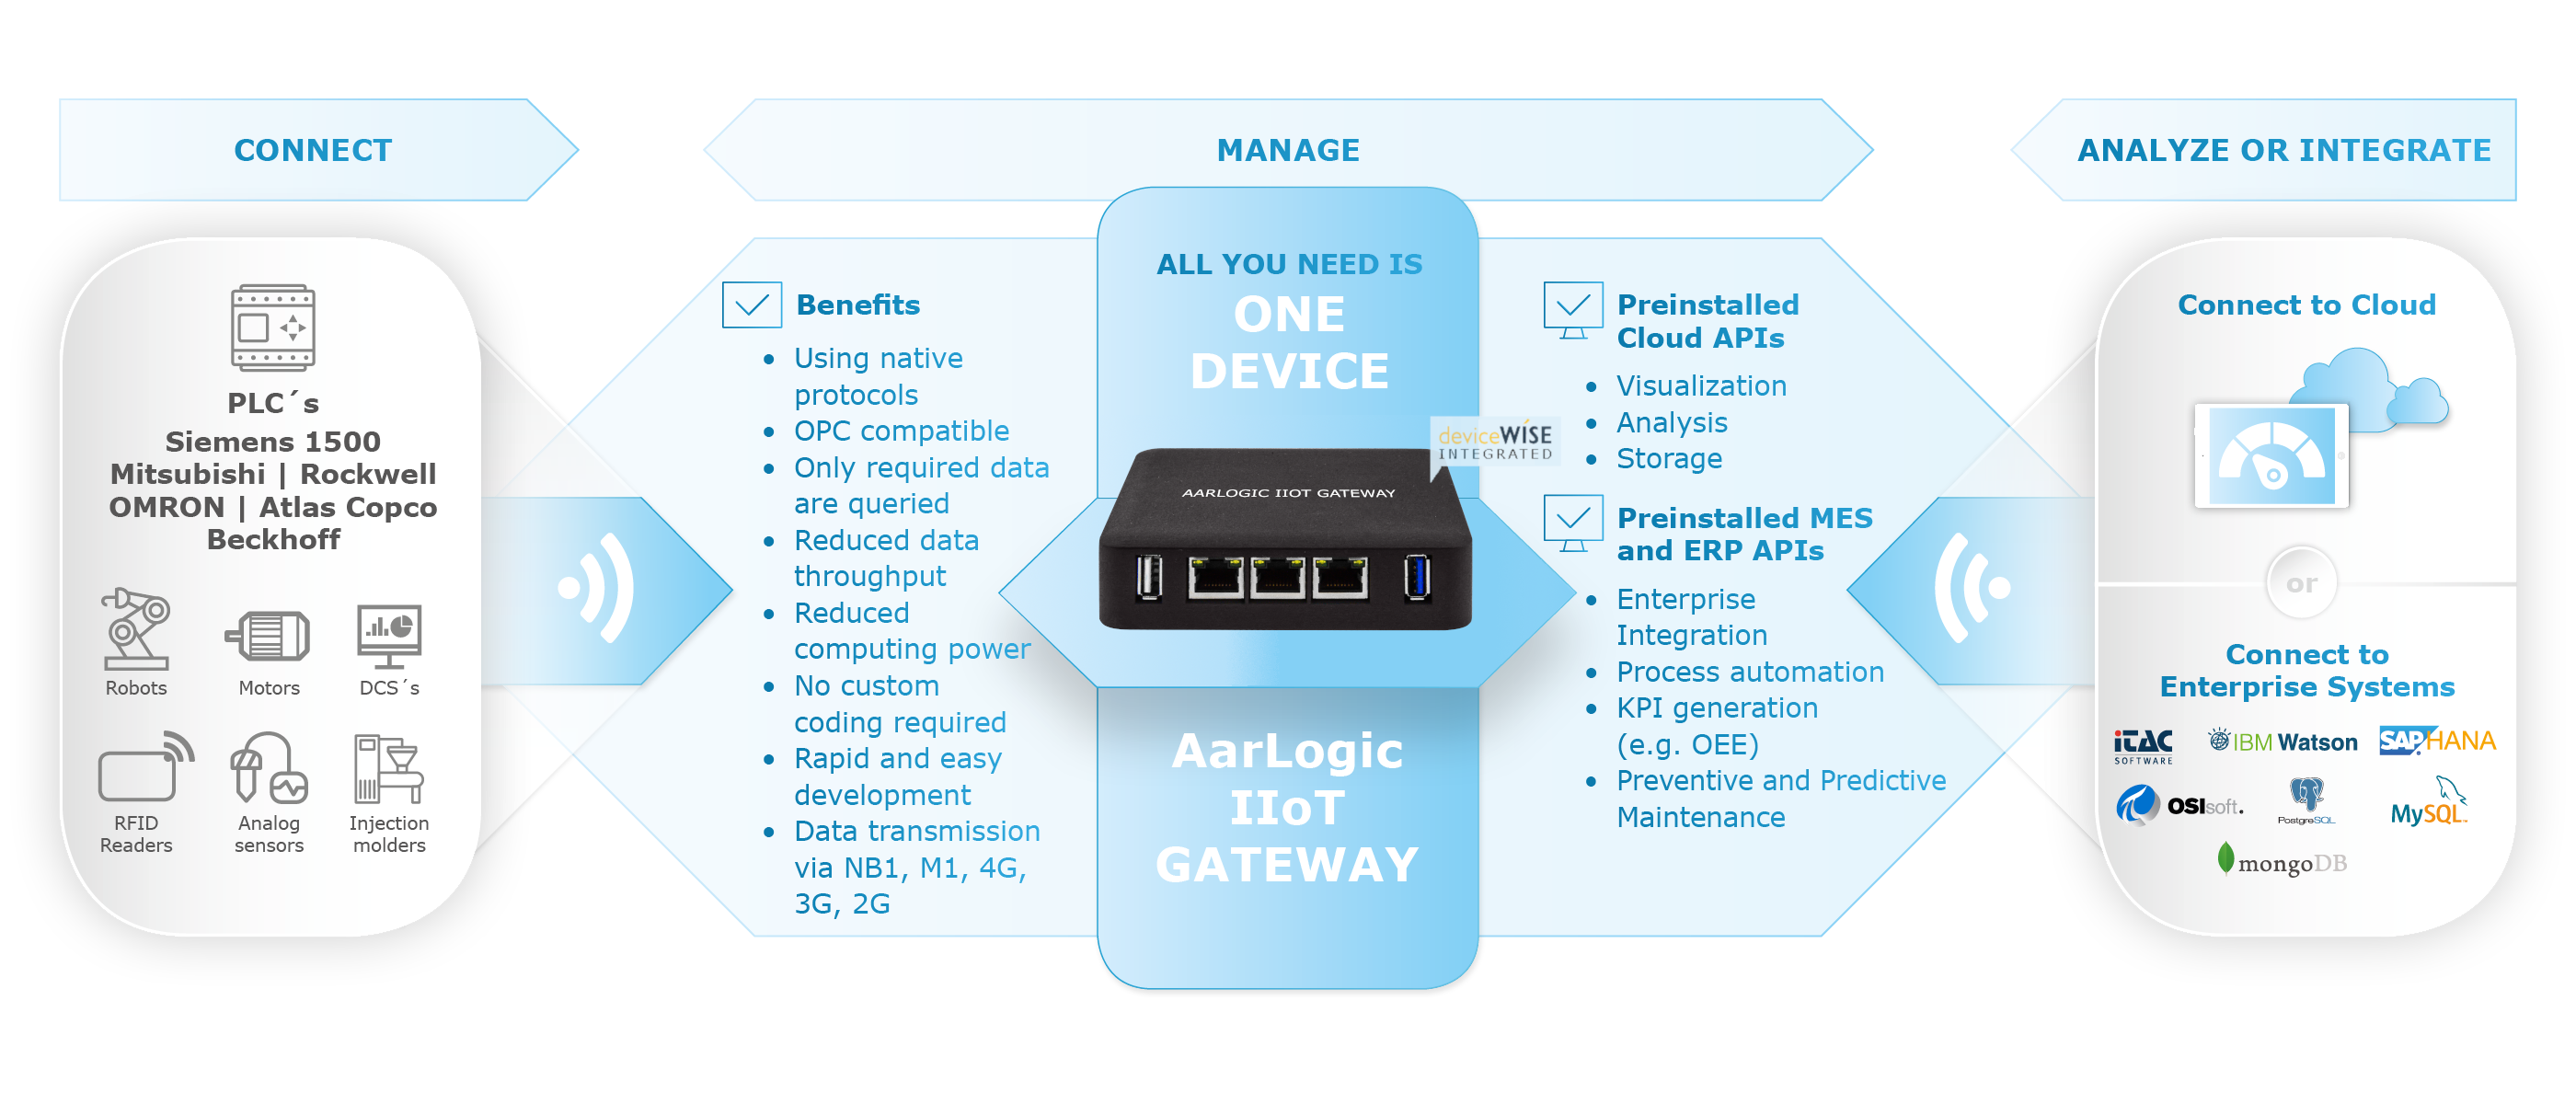 AarLogic-IIoT-Gateway-dewiseWISE-How-it-works-v2